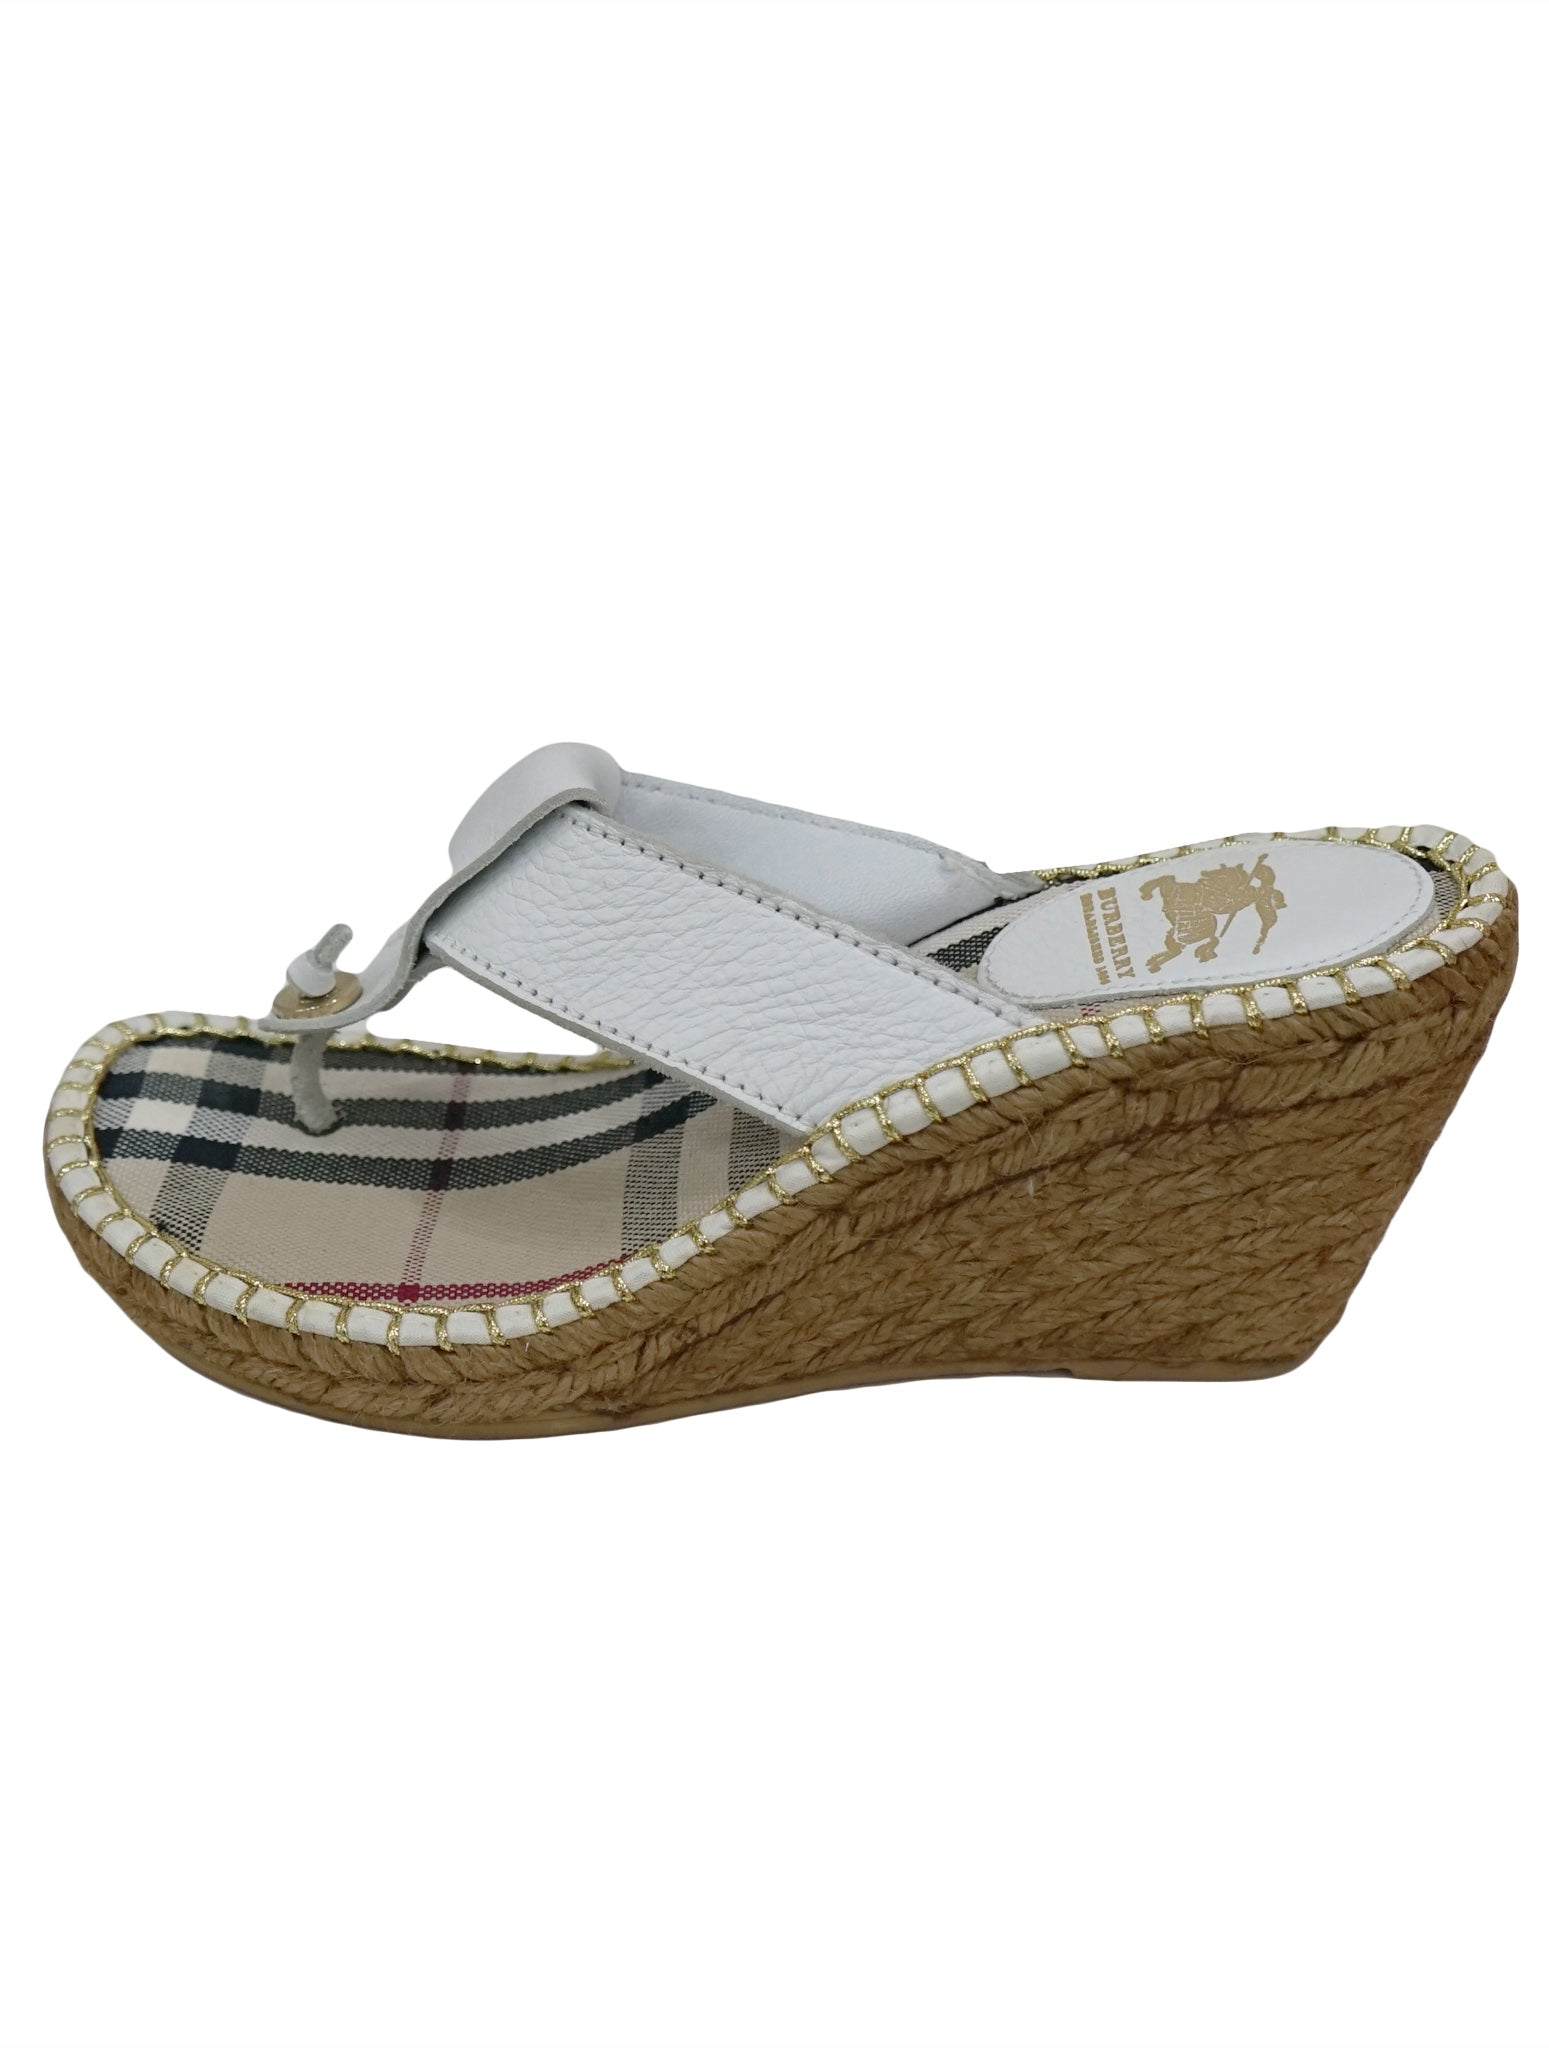 LEATHER ESPADRILLE WEDGE THONG